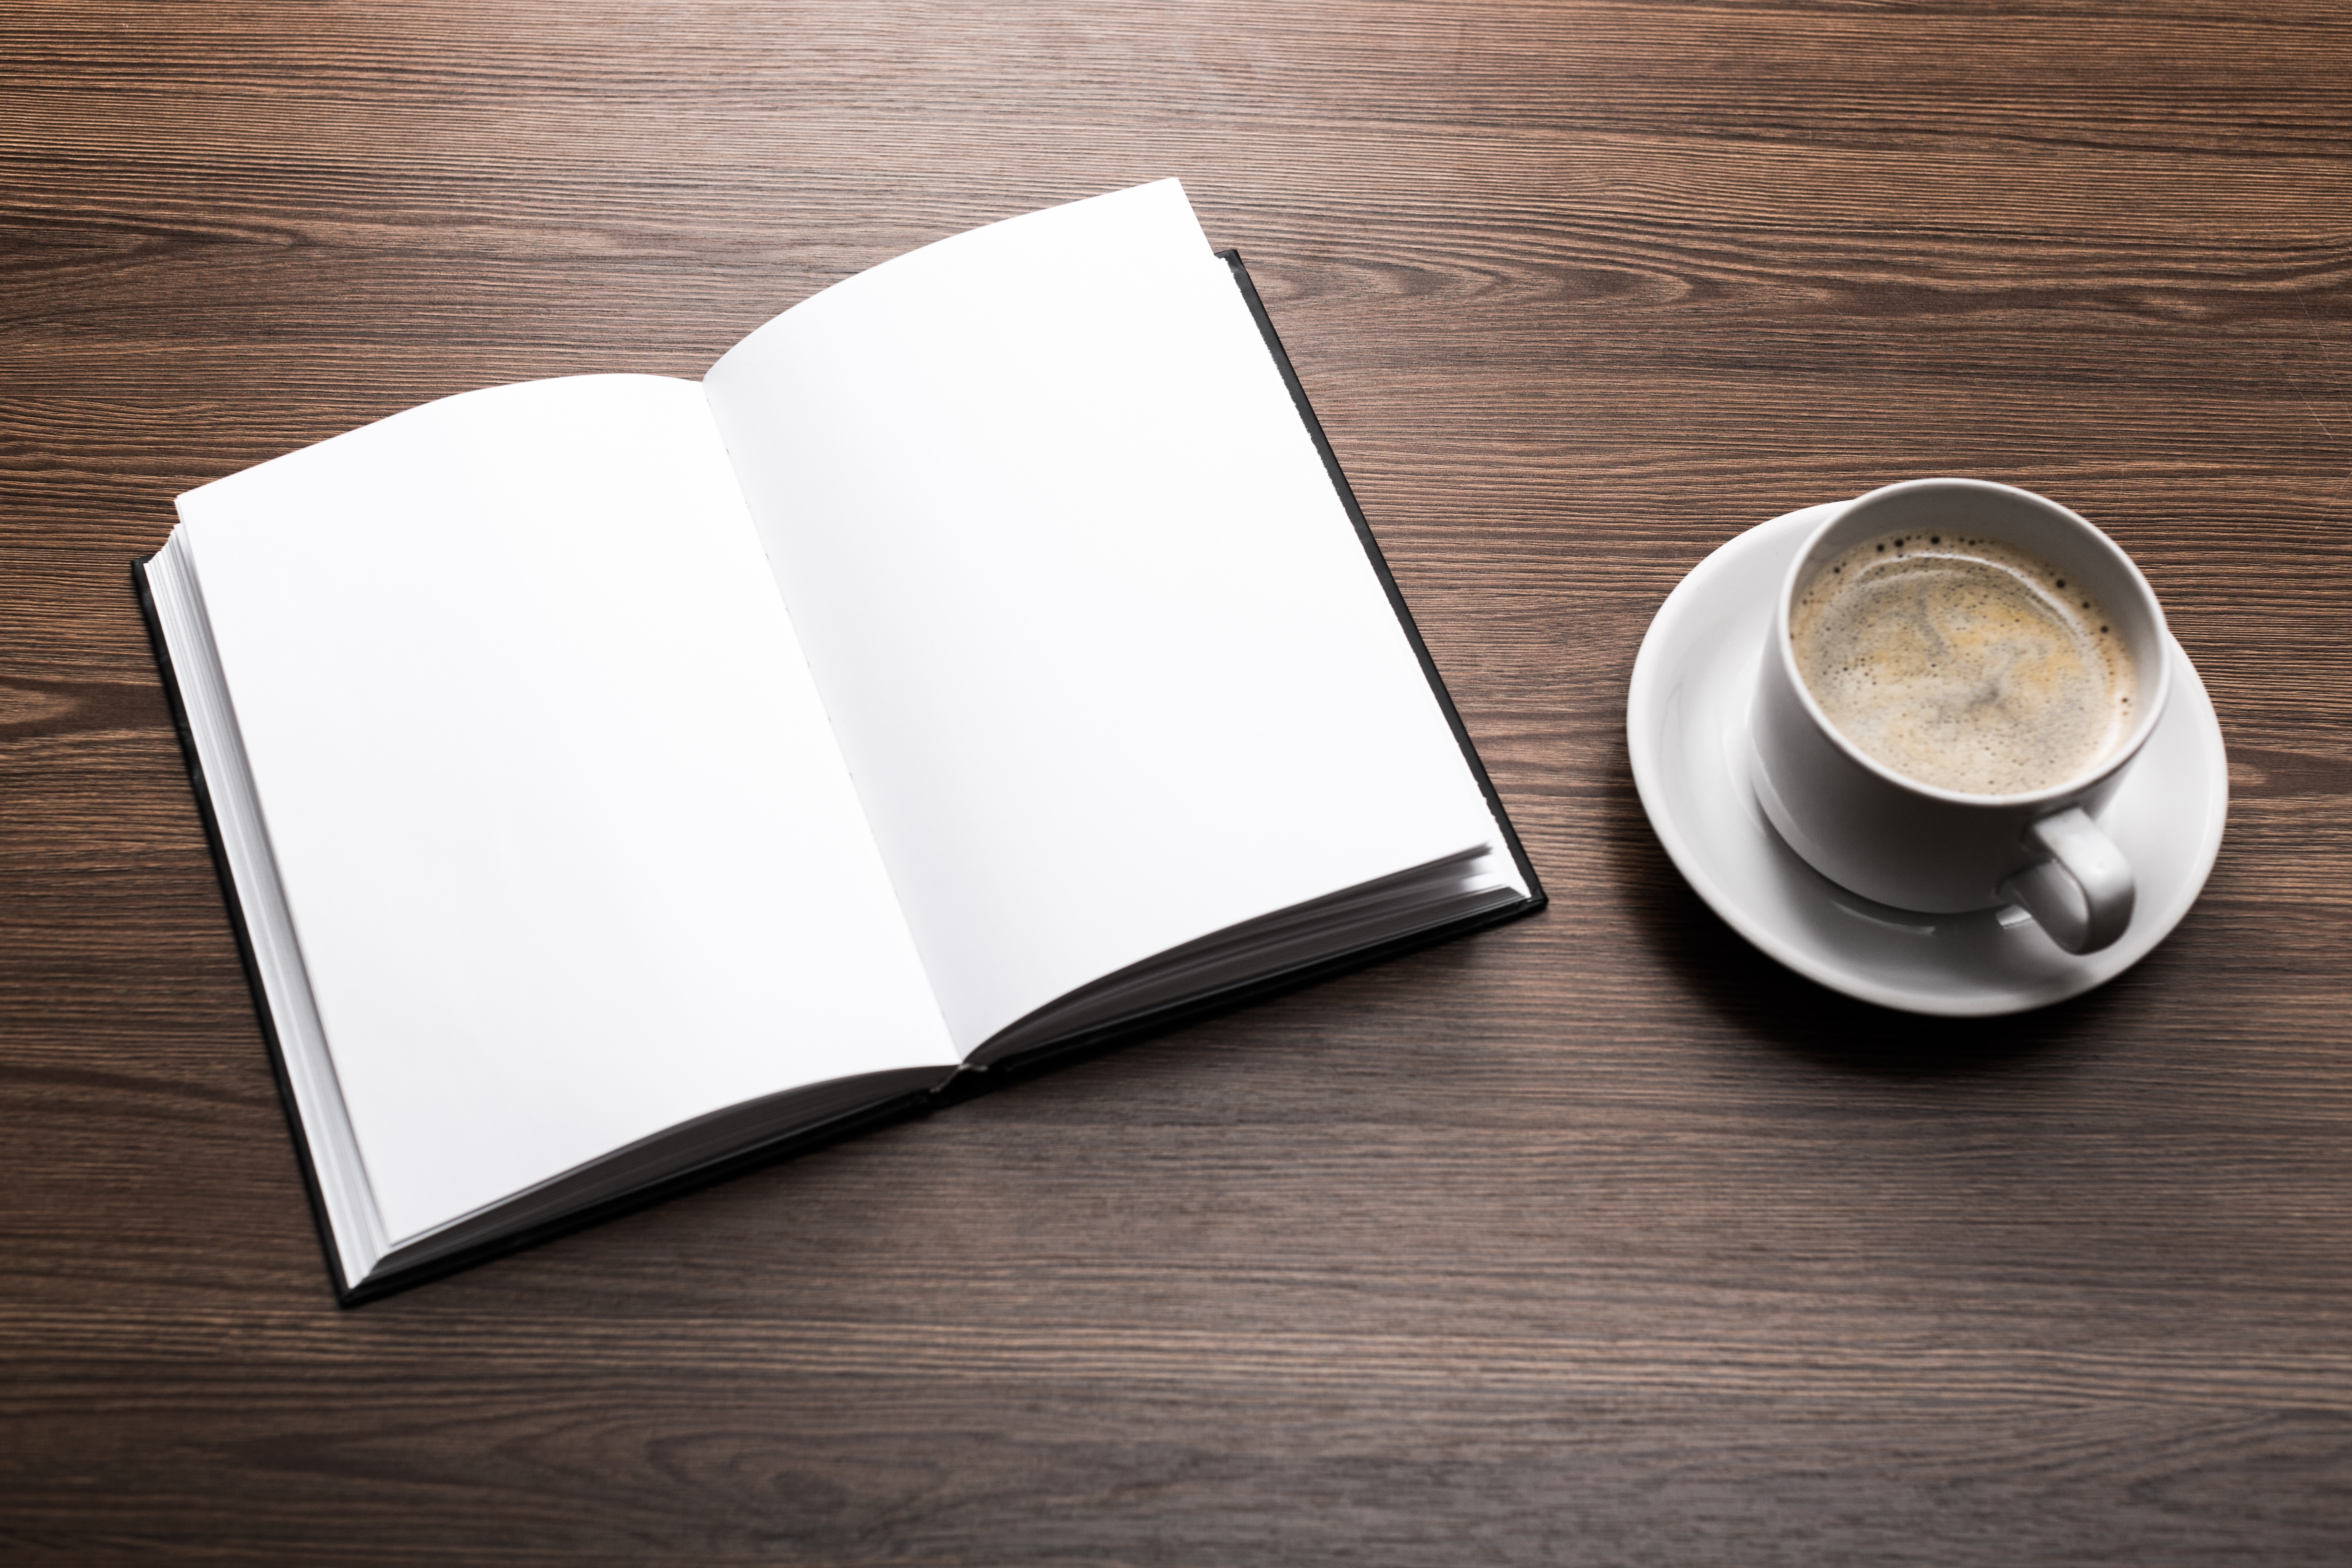 3 Things To Consider Before Using A Pen Name